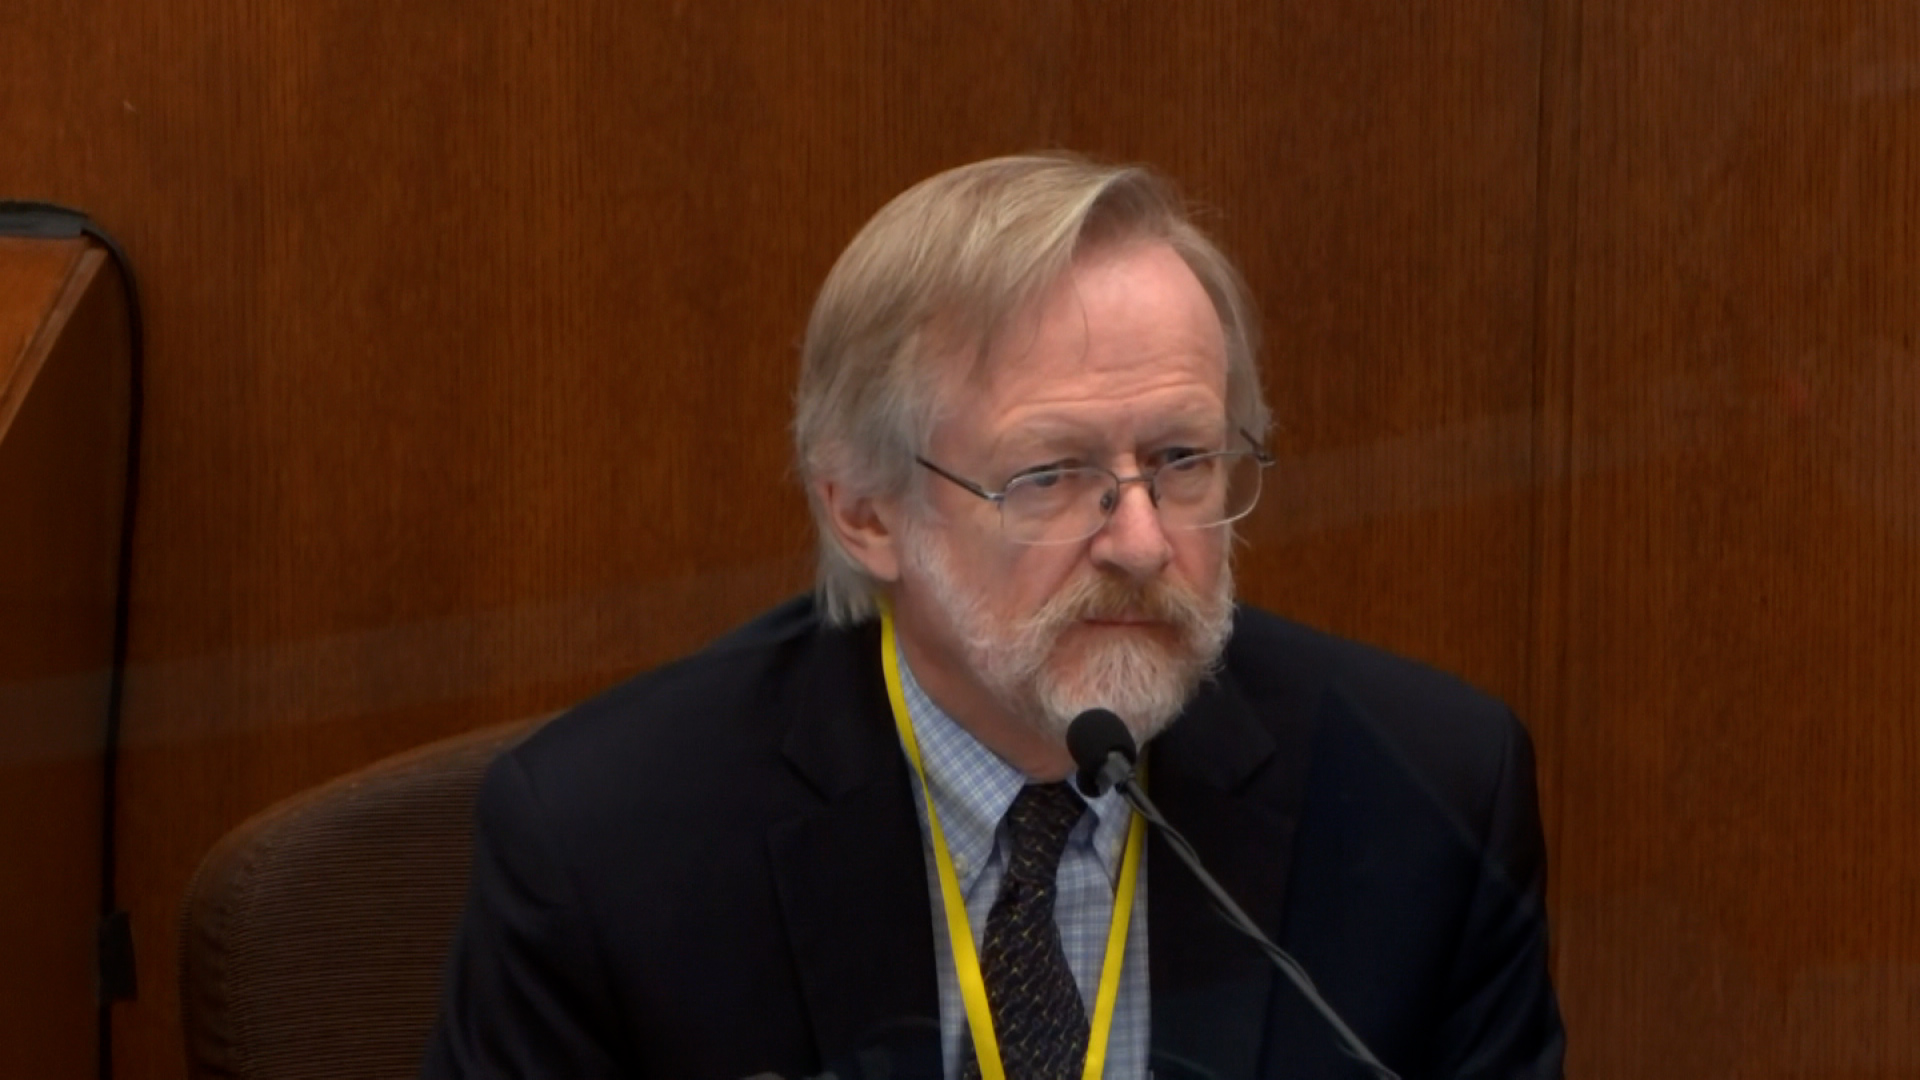 Dr. Martin Tobin testifies on Thursday, April 15.